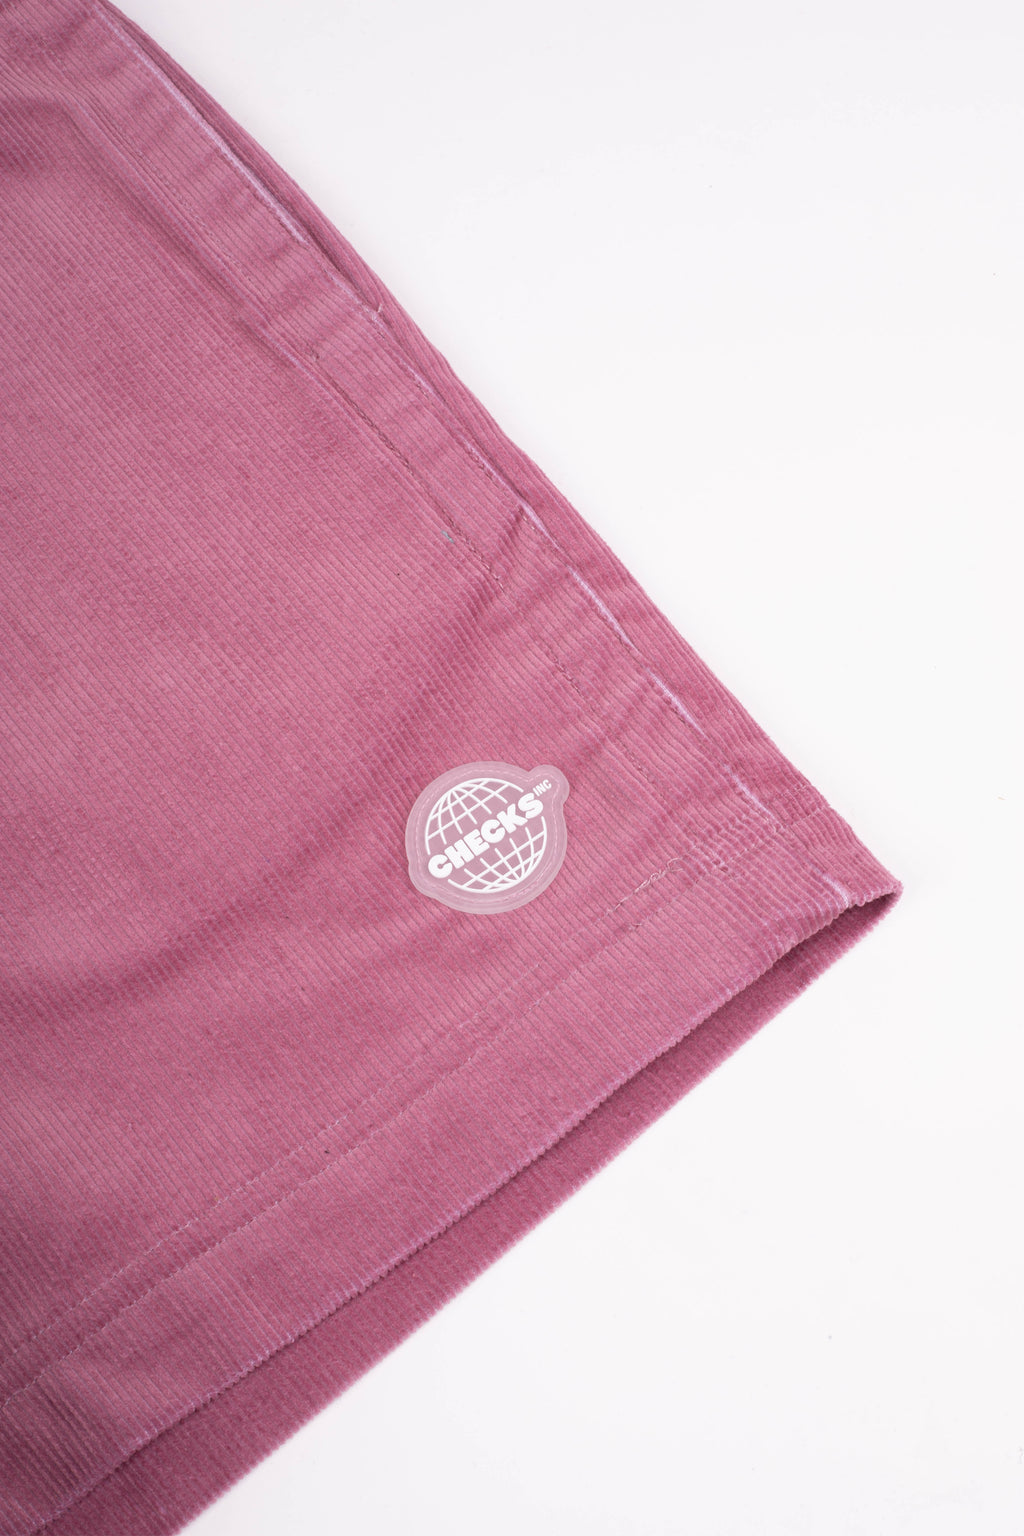 Corduroy Rugby Shorts Raspberry | CHECKS DOWNTOWN